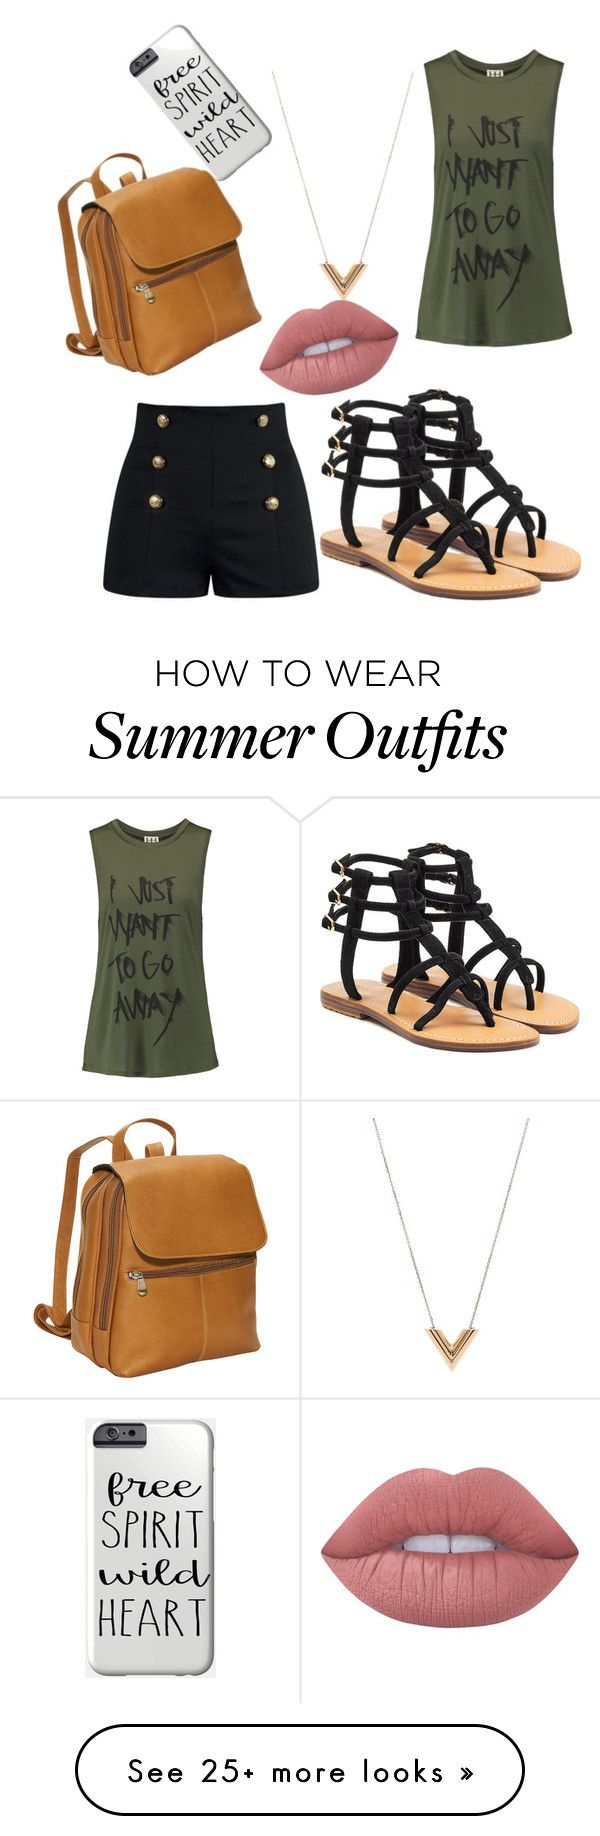 """""""Summer Outfit"""" by aqua-croft on Polyvore featuring Haute Hippie, Louis Vuitton, Lime Crime, David King & Co. and Mystique"""